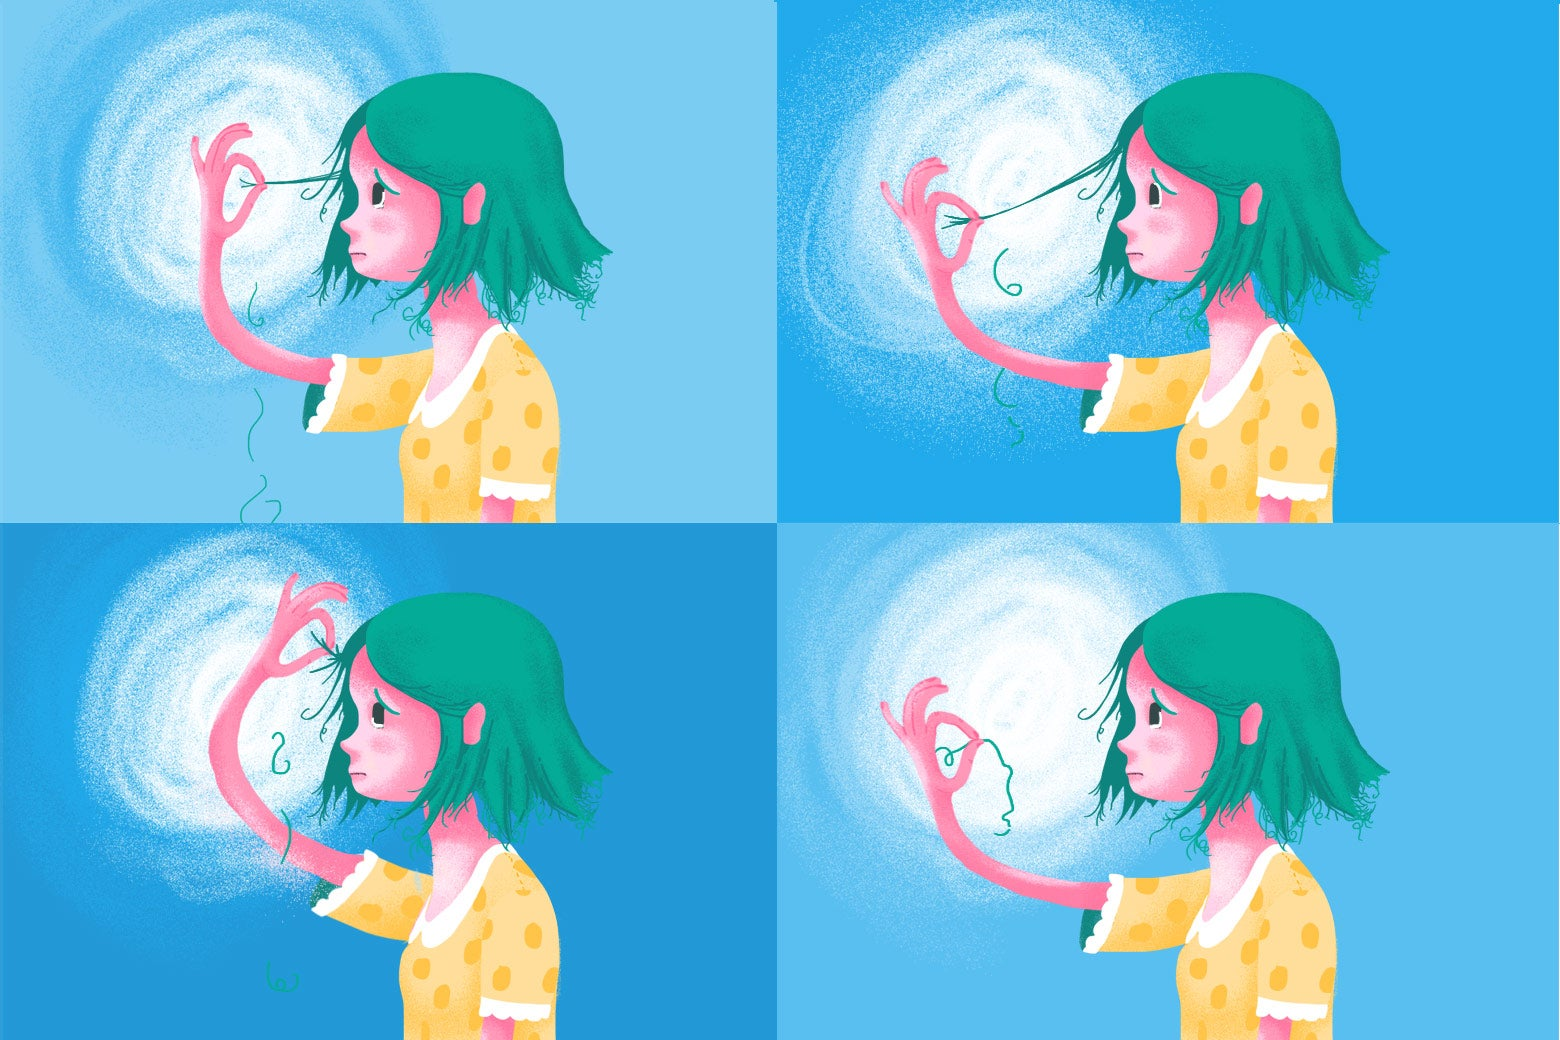 A four-panel comic of a woman pulling a single hair out of her head.